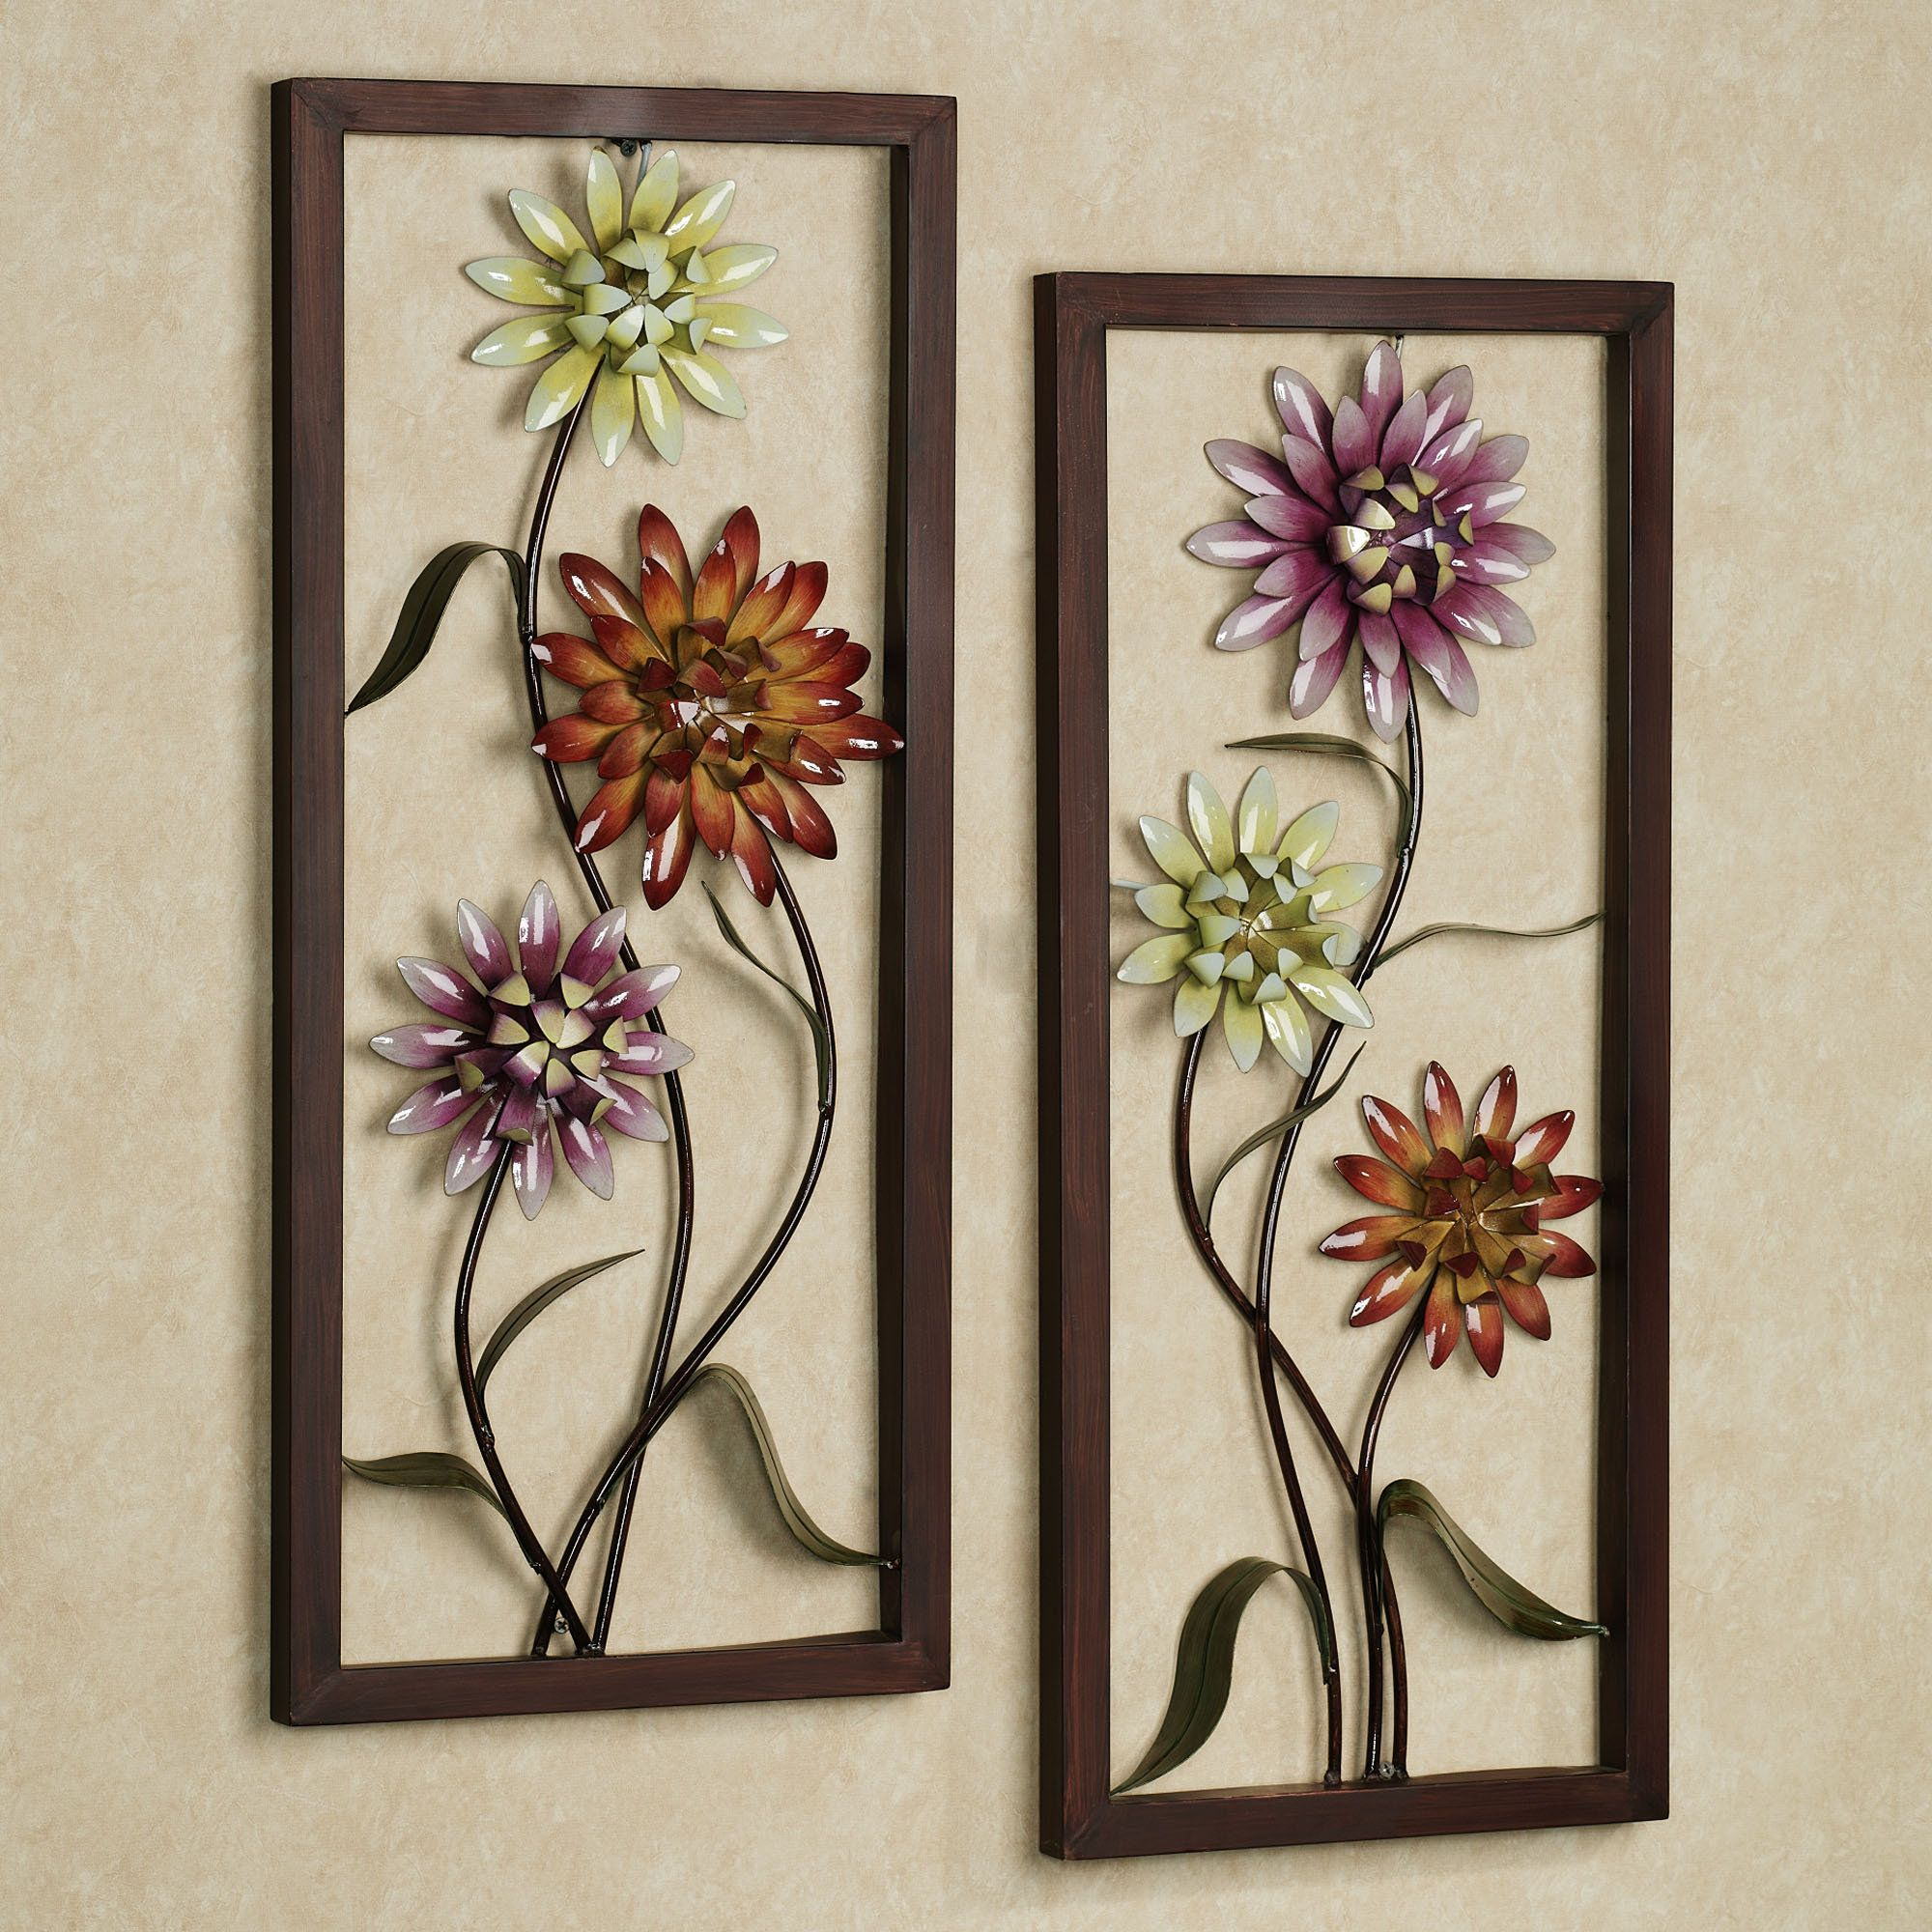 Diy Bathroom Wall Decor Pinterest Ideas Pinterest Floral Wall Wall Dec